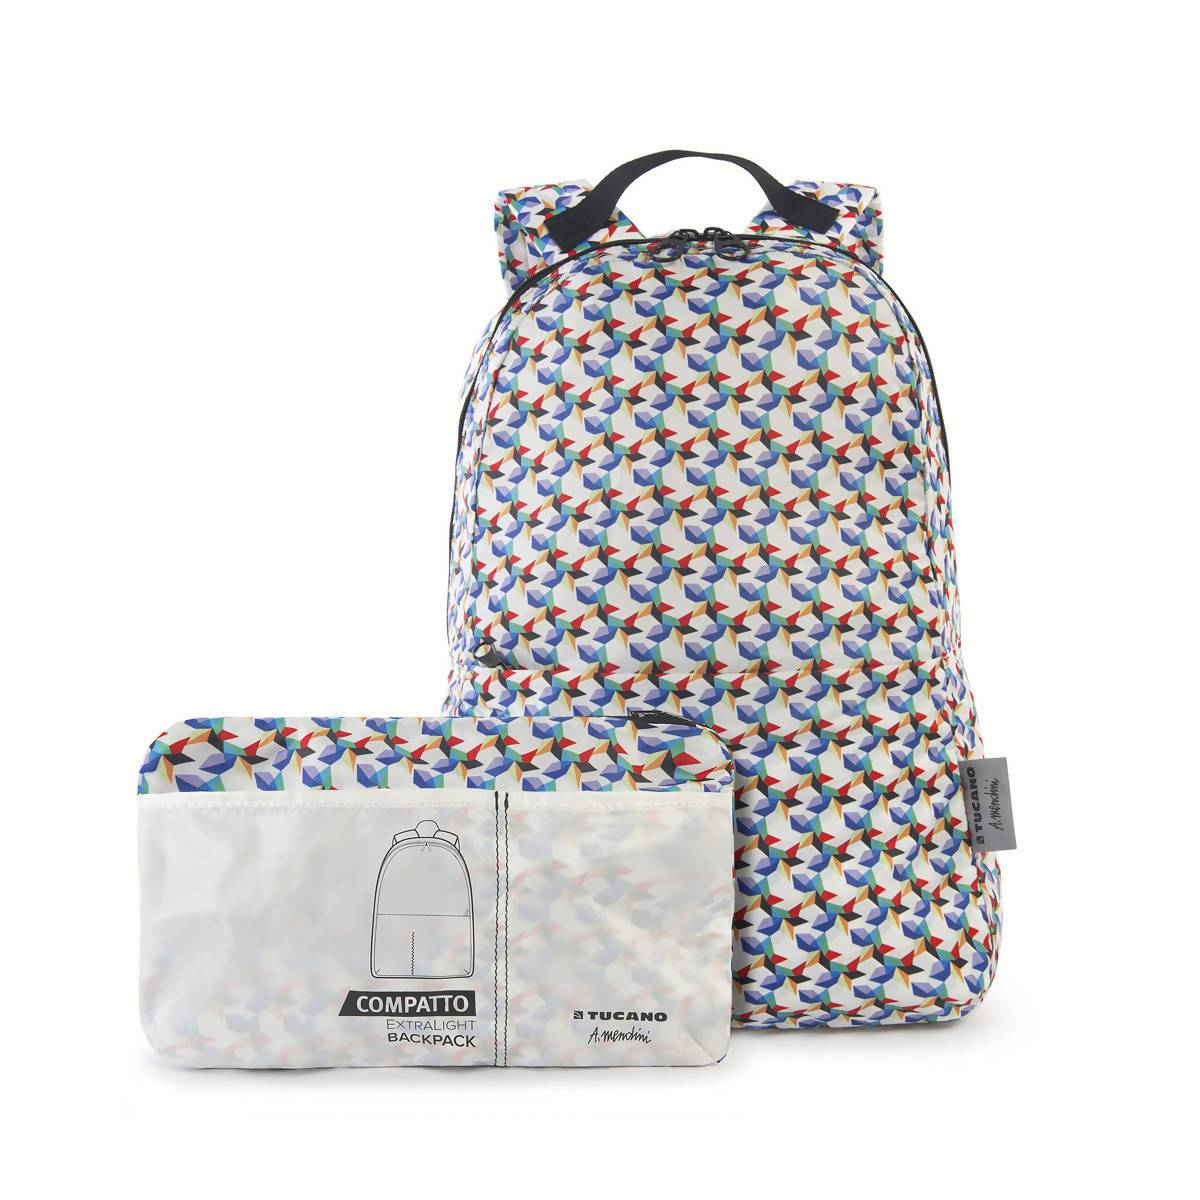 Compact Foldable Backpack Colours / White - New Arrivals - Zigzagme - Naiise